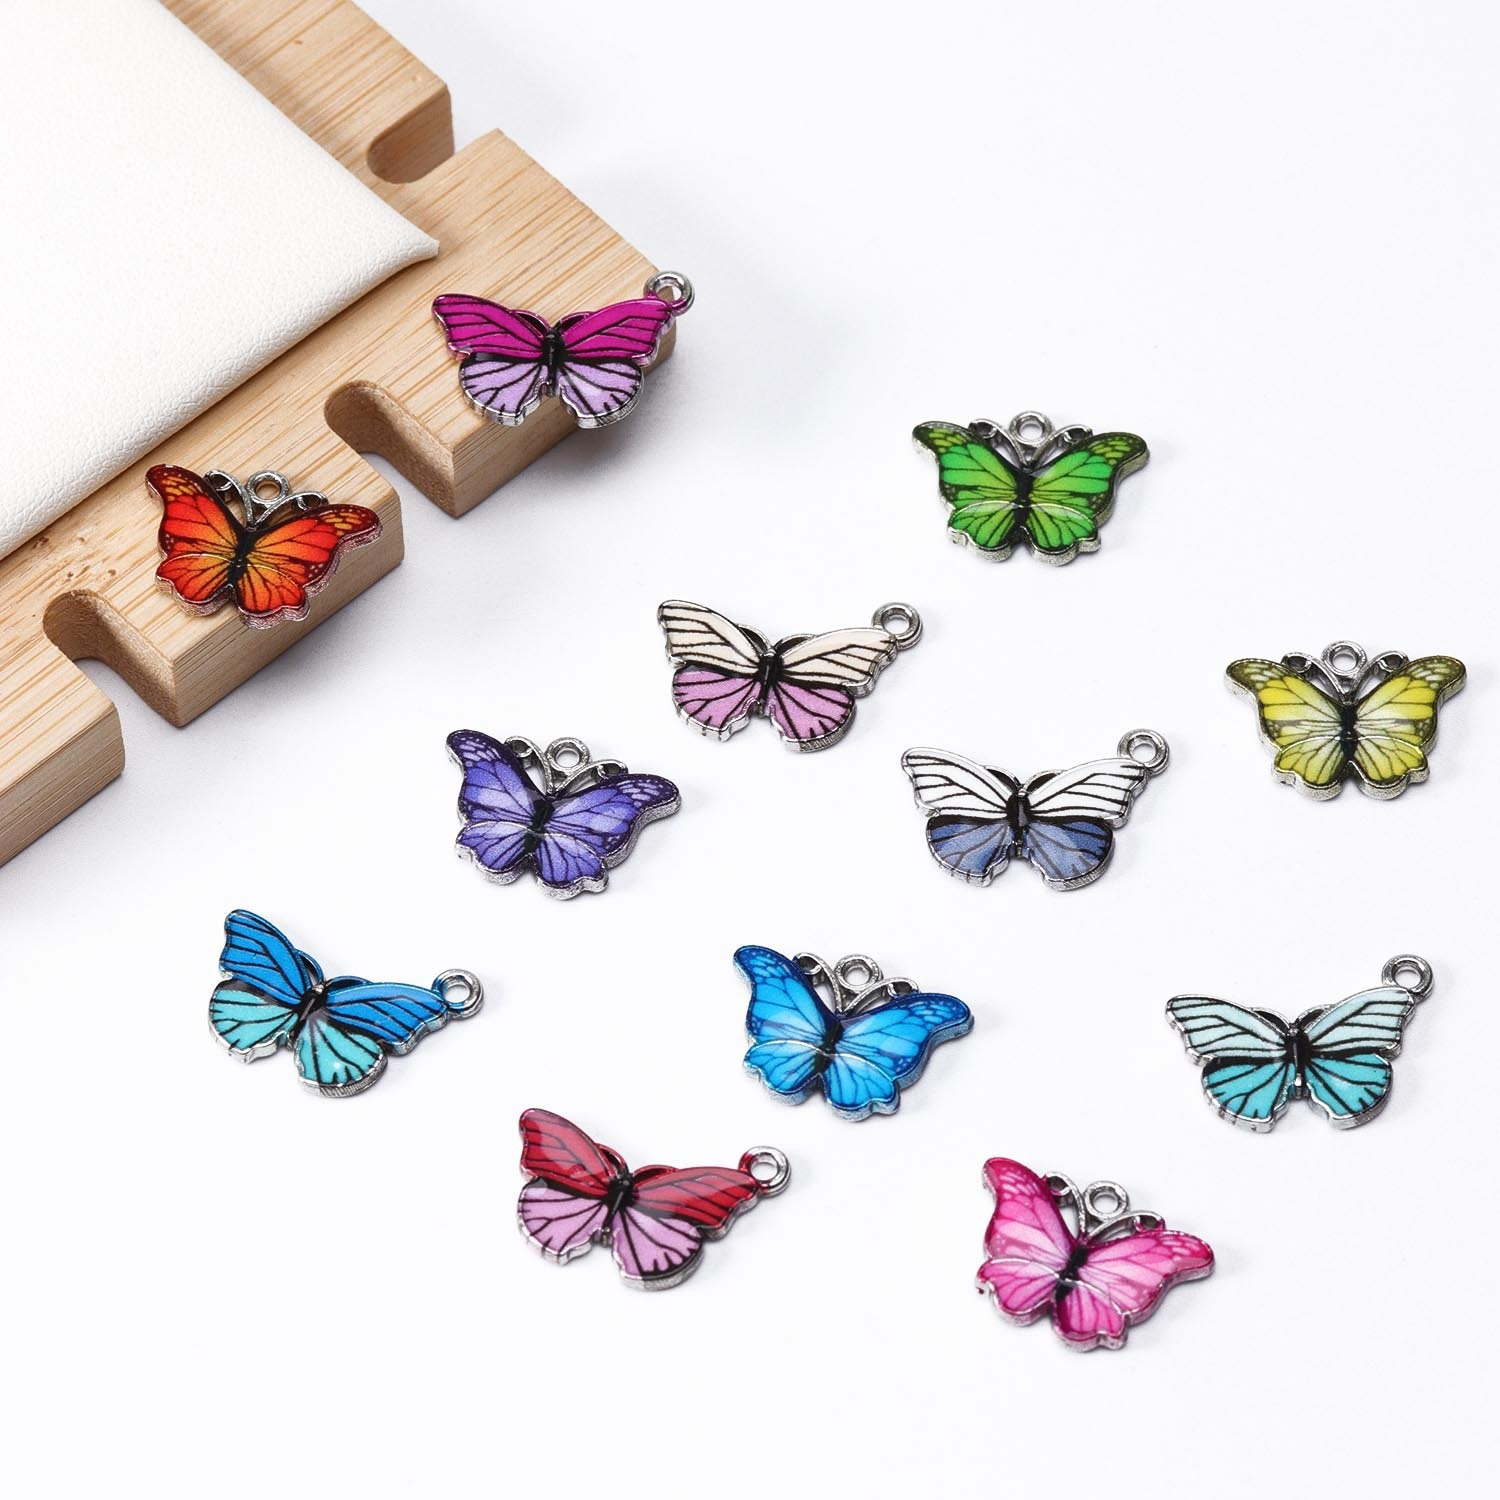 10pcs/lot Metal Butterfly Pendant Accessories DIY Retro Necklace Bracelet Material Insect Enamel